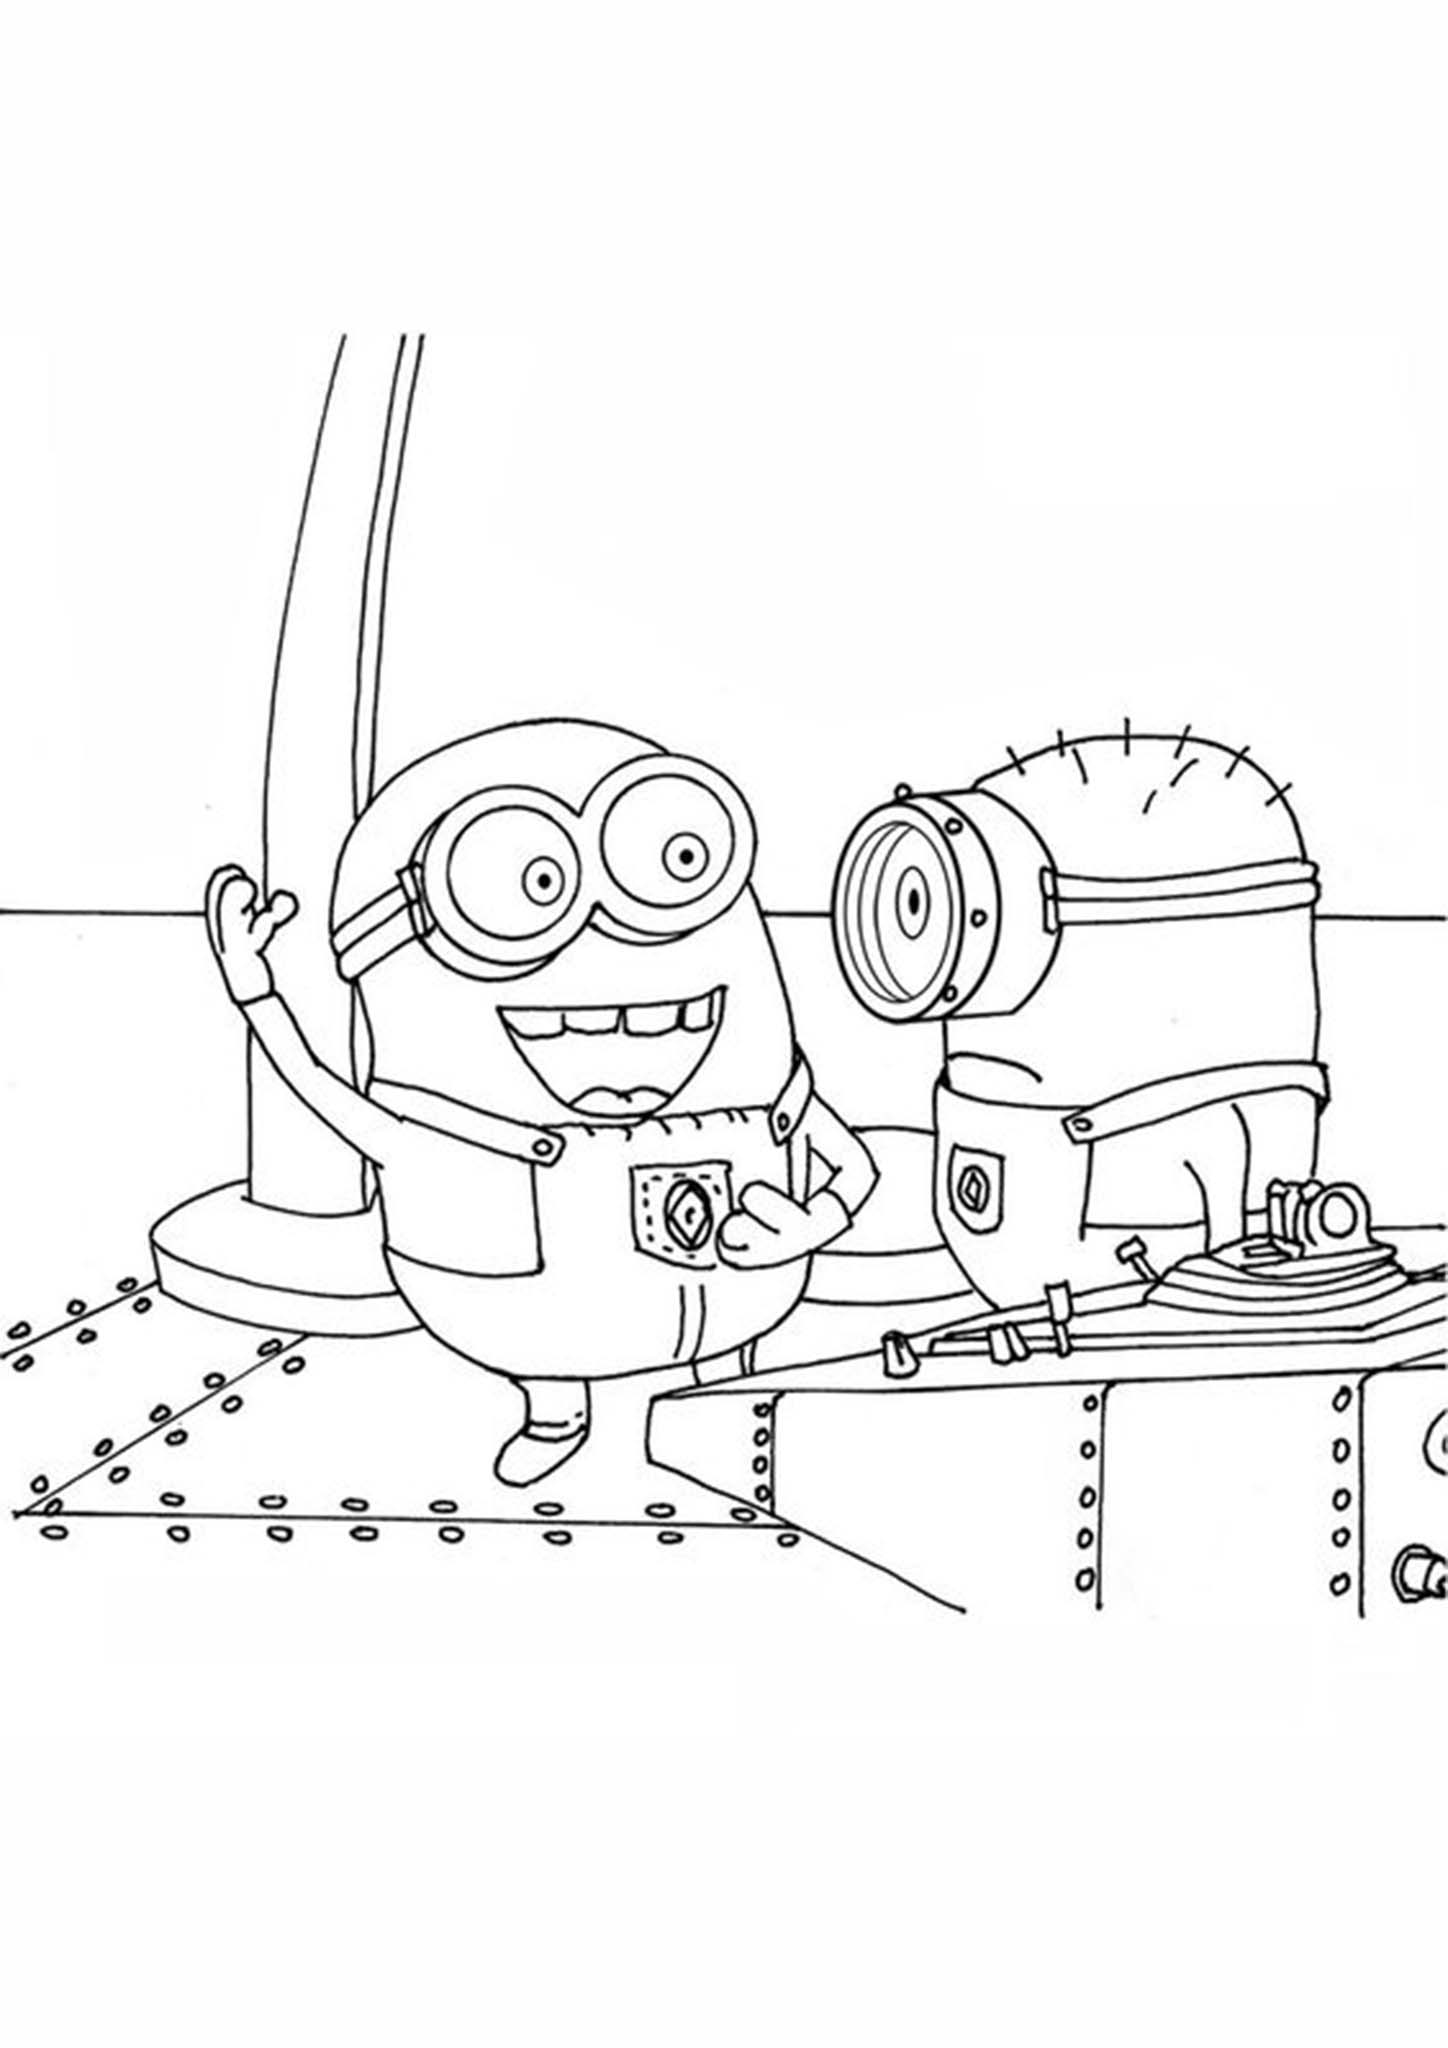 Fun Minions coloring pages for your little one. They are free and easy to print. The collection is varied with different skill levels